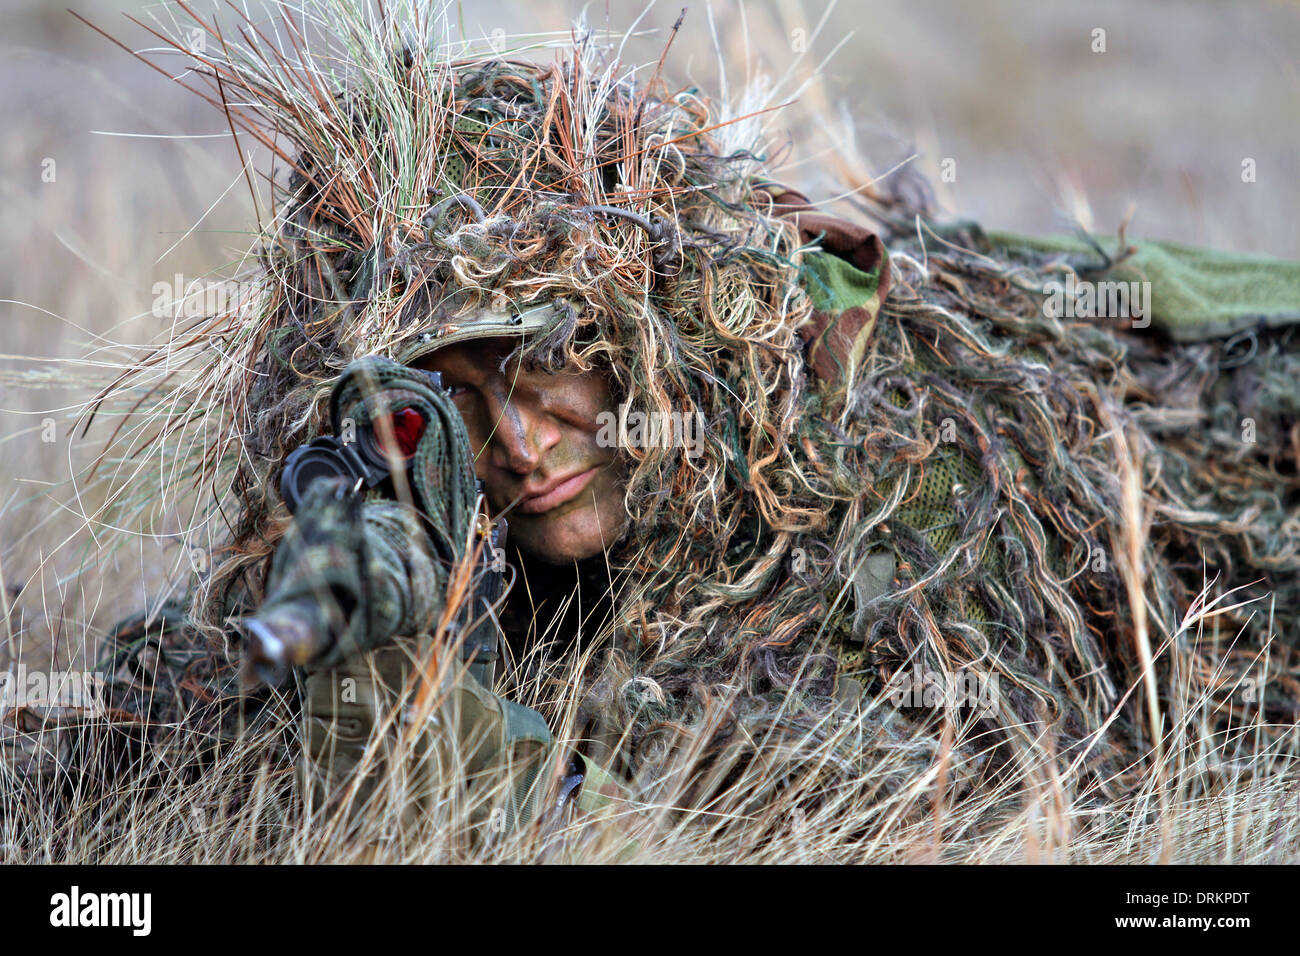 A sniper with the Royal Netherlands Army during joint training exercises January 13, 2014 in Fort Bragg, North Carolina. - Stock Image